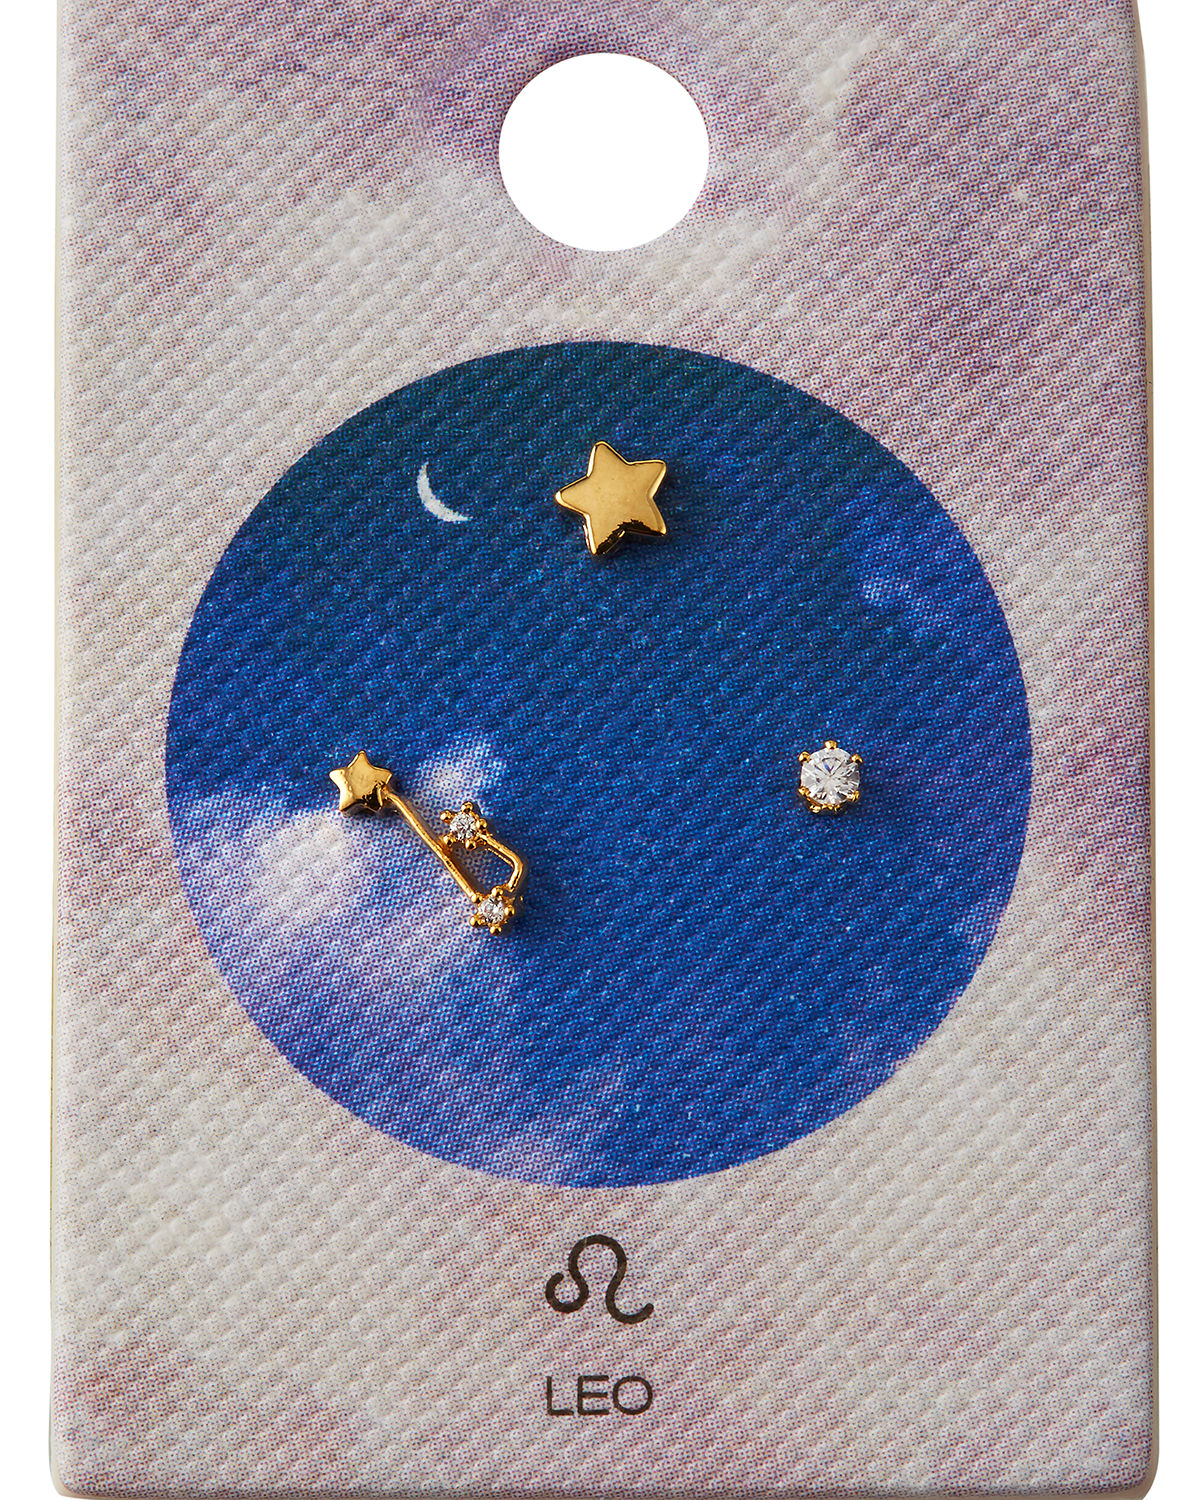 Tai Accessories ZODIAC CONSTELLATION STUD EARRINGS W/ CUBIC ZIRCONIA